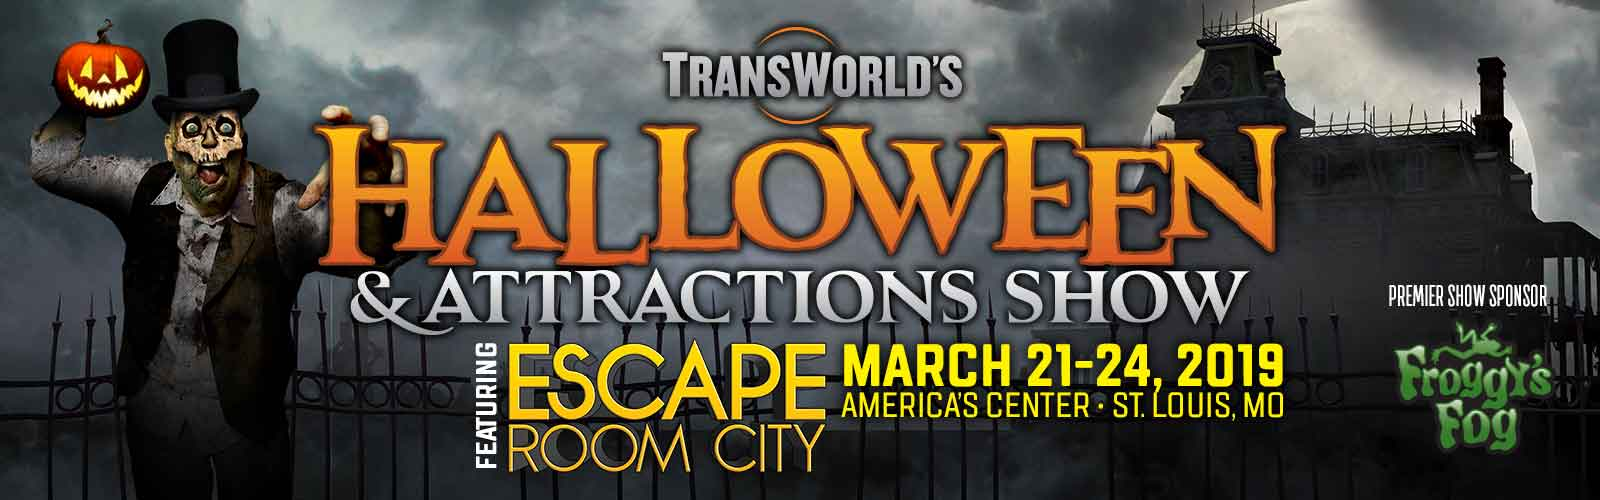 TransWorld's Halloween & Attractions Show and Christmas Show